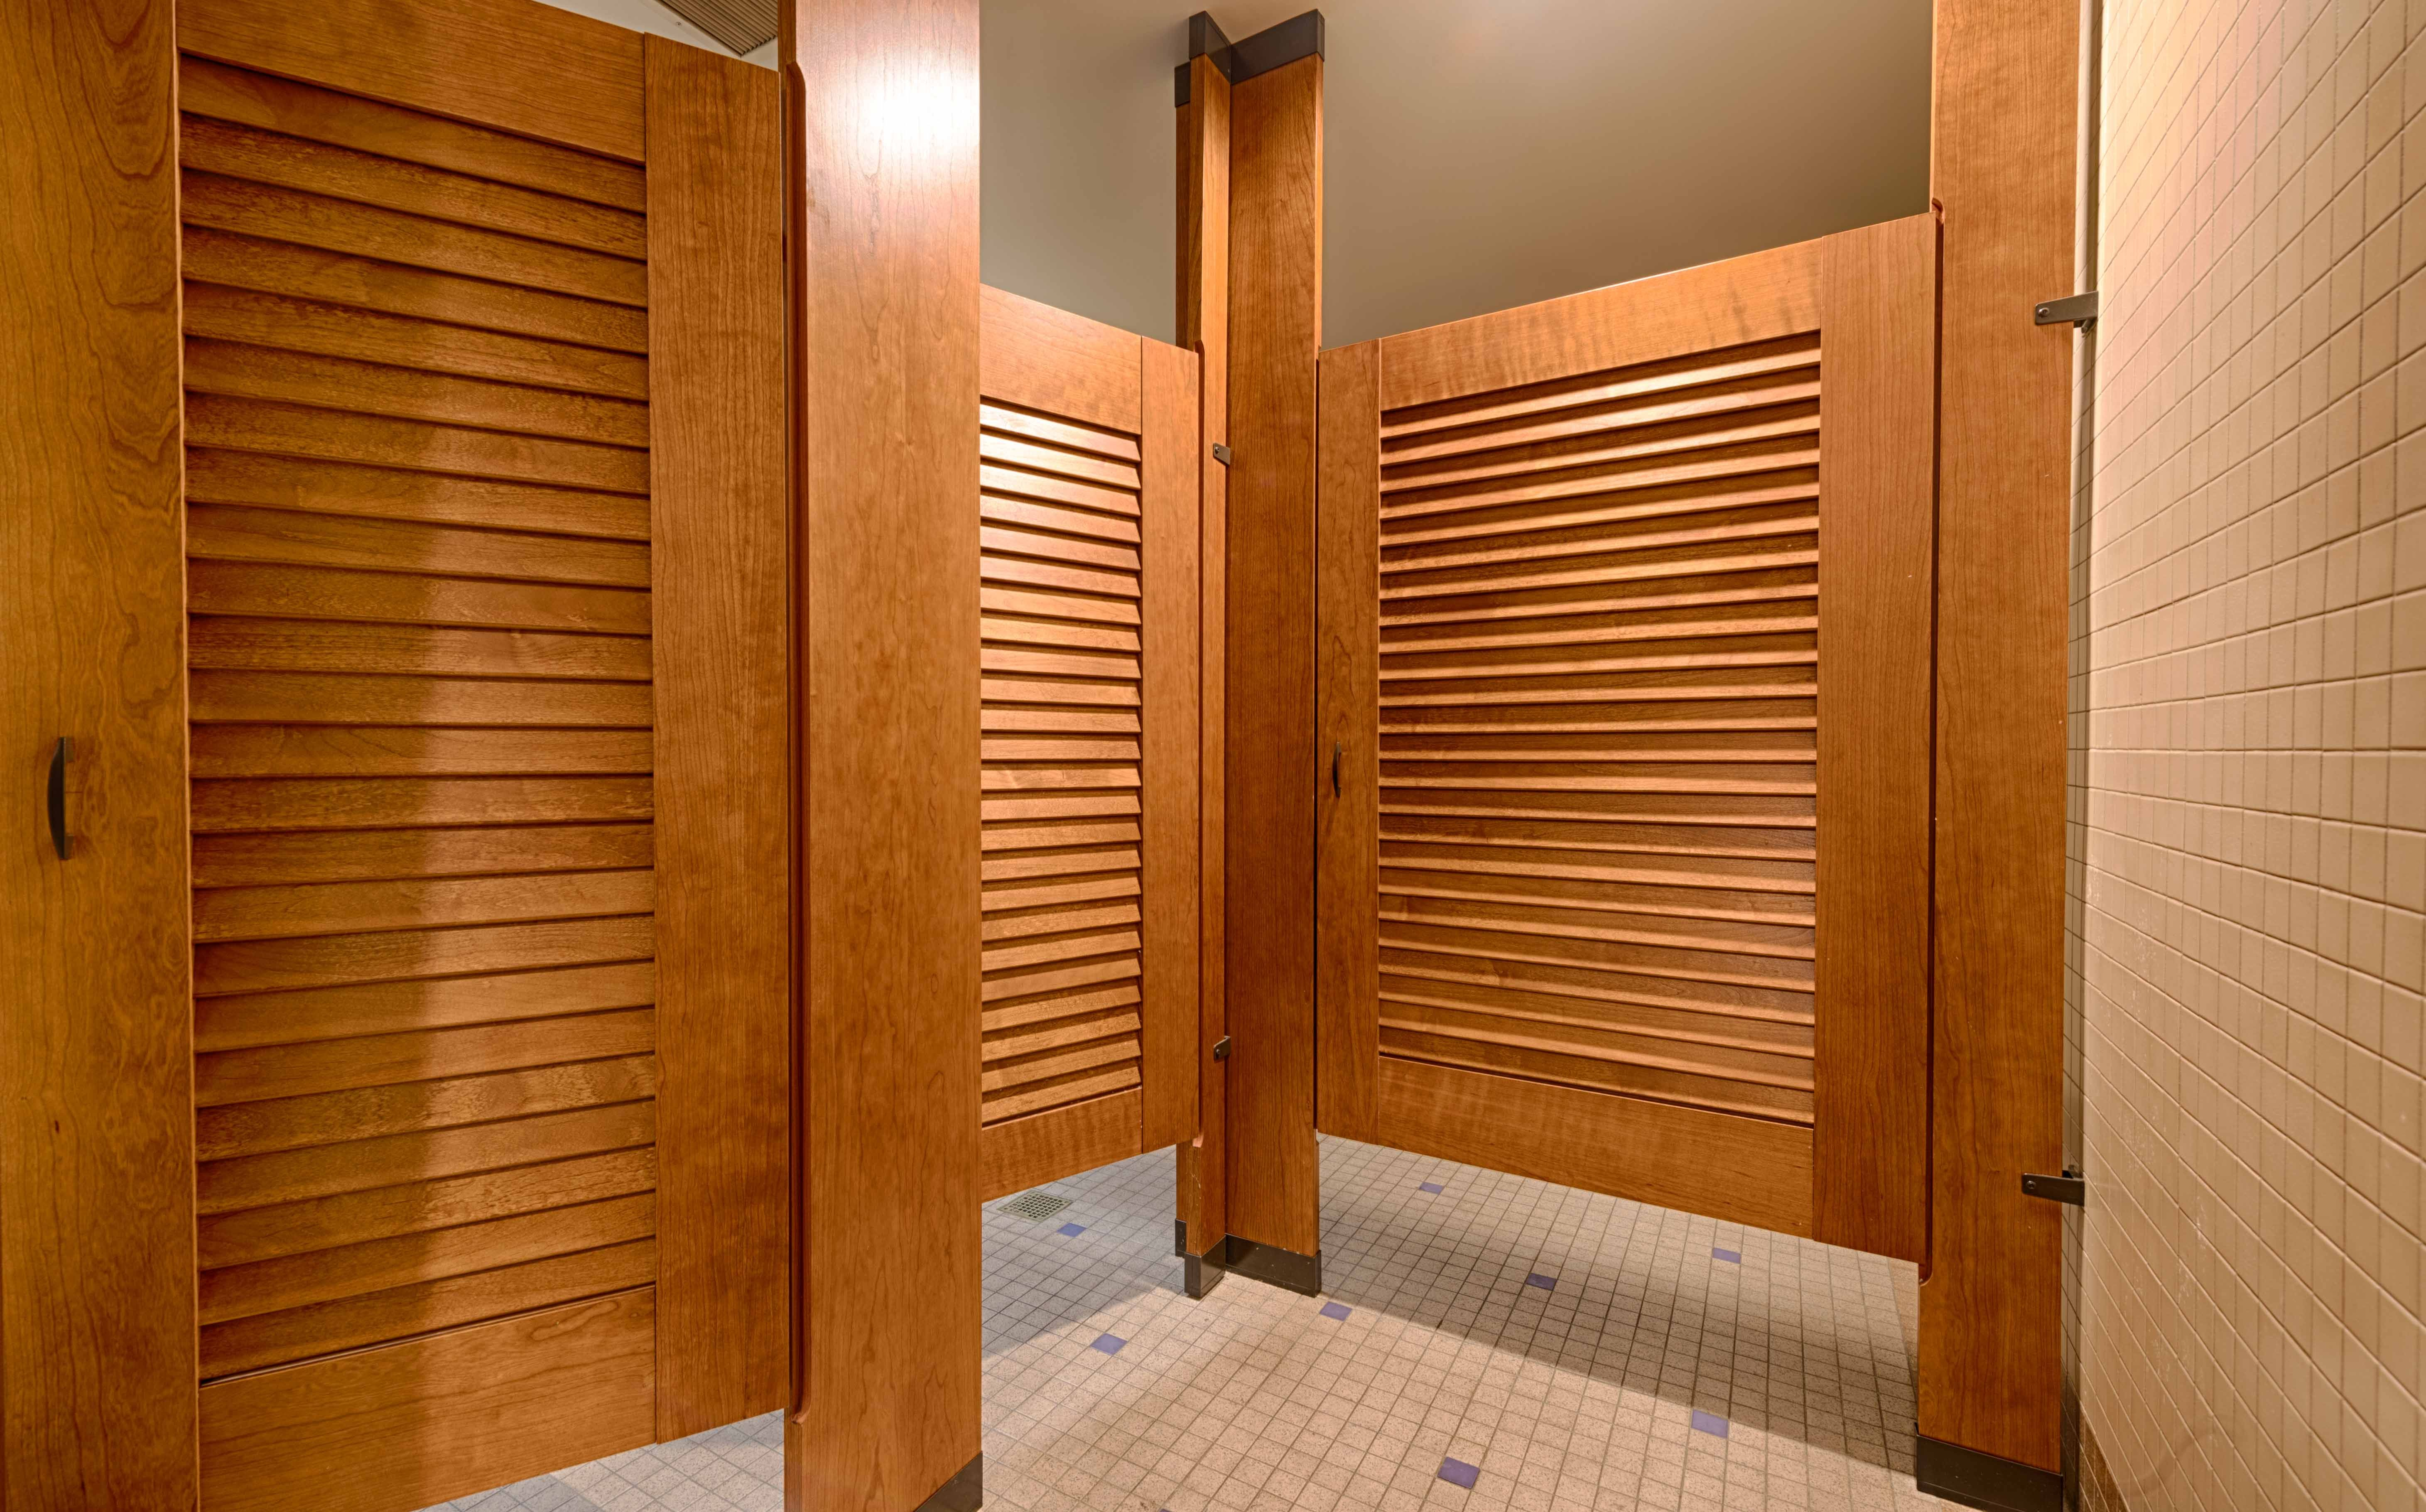 Ironwood Manufacturing Toilet Partitions And Louvered Bathroom